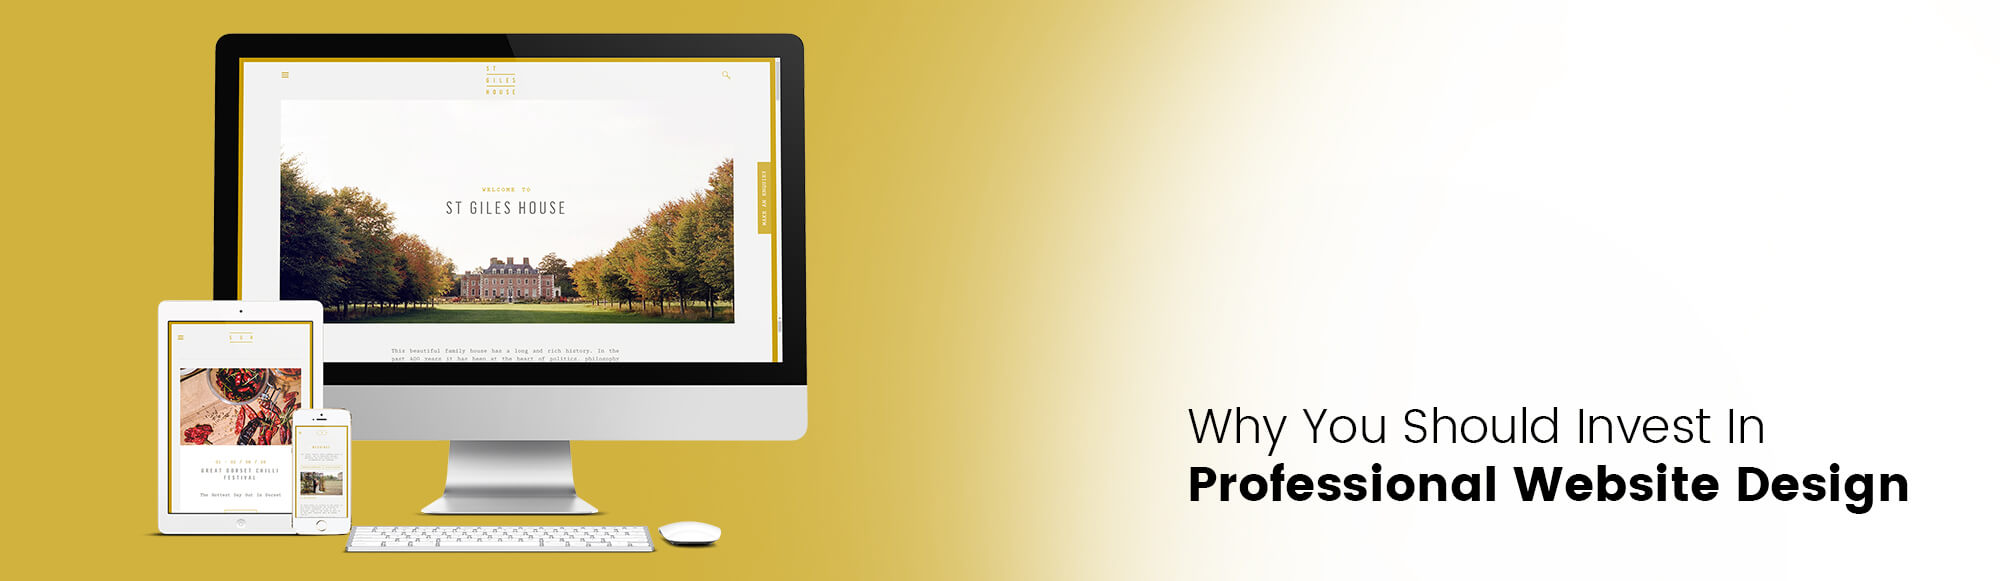 Sites produced by professional website designers.